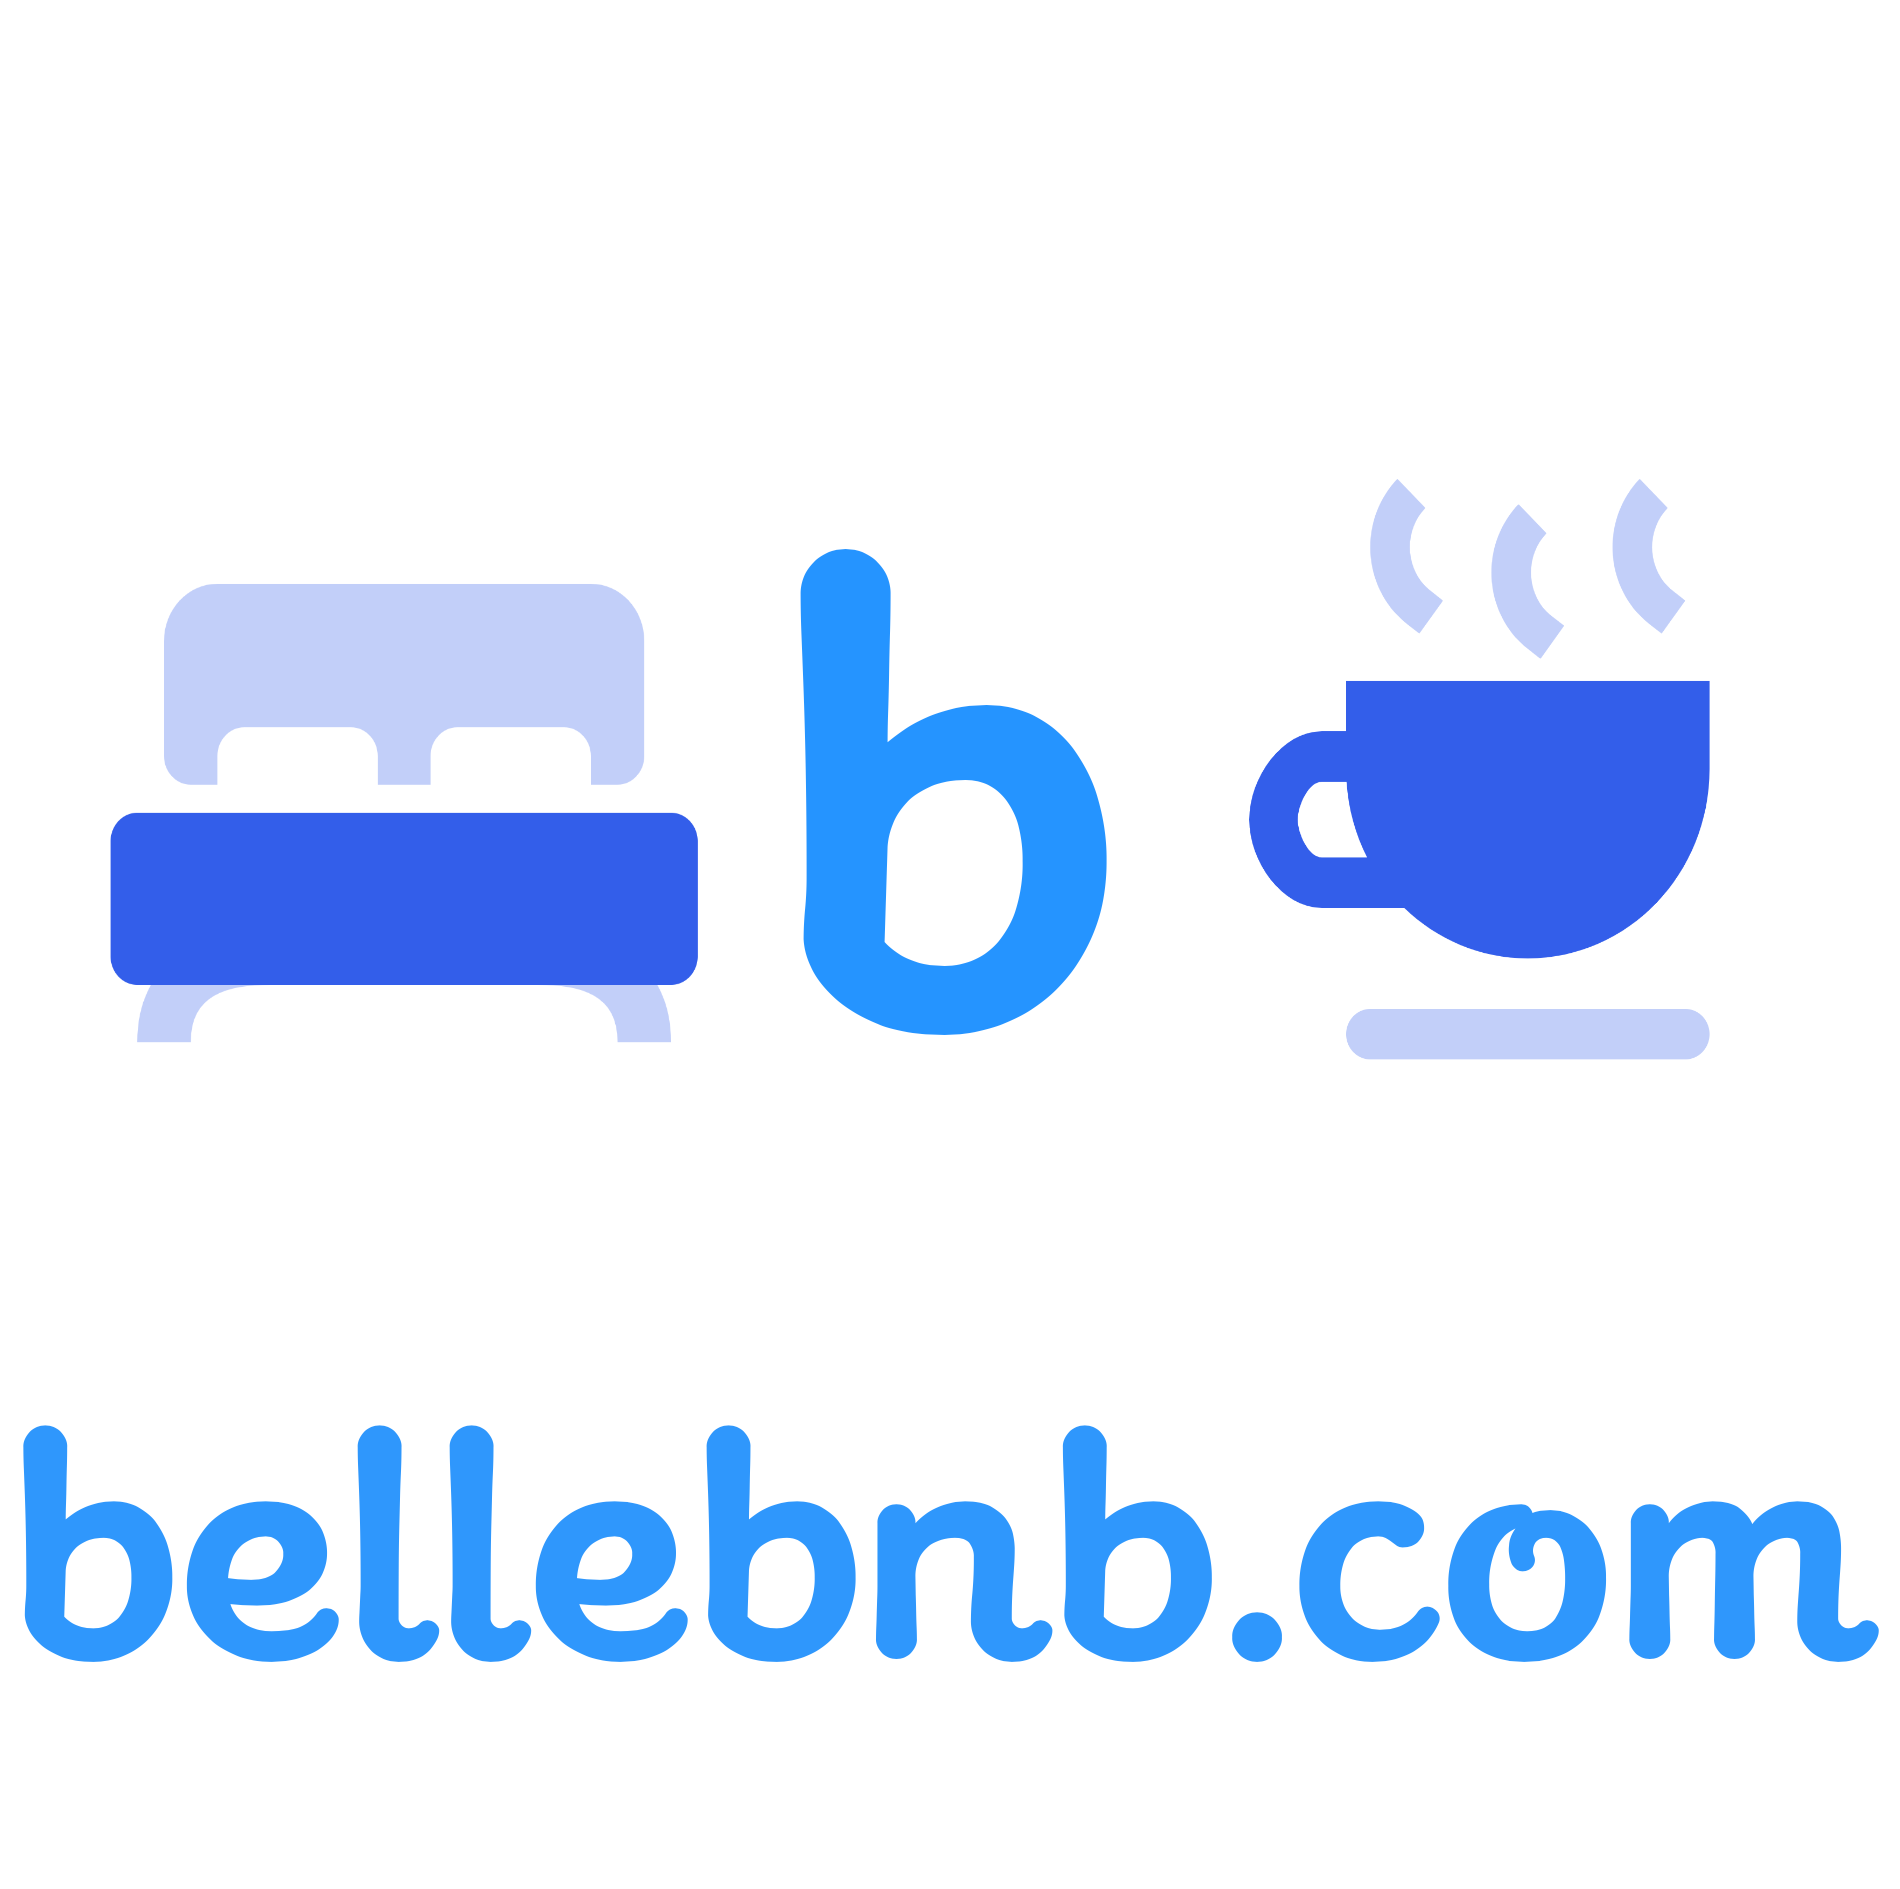 Bellebnb.com Hotel Bed and Breakfast PMS